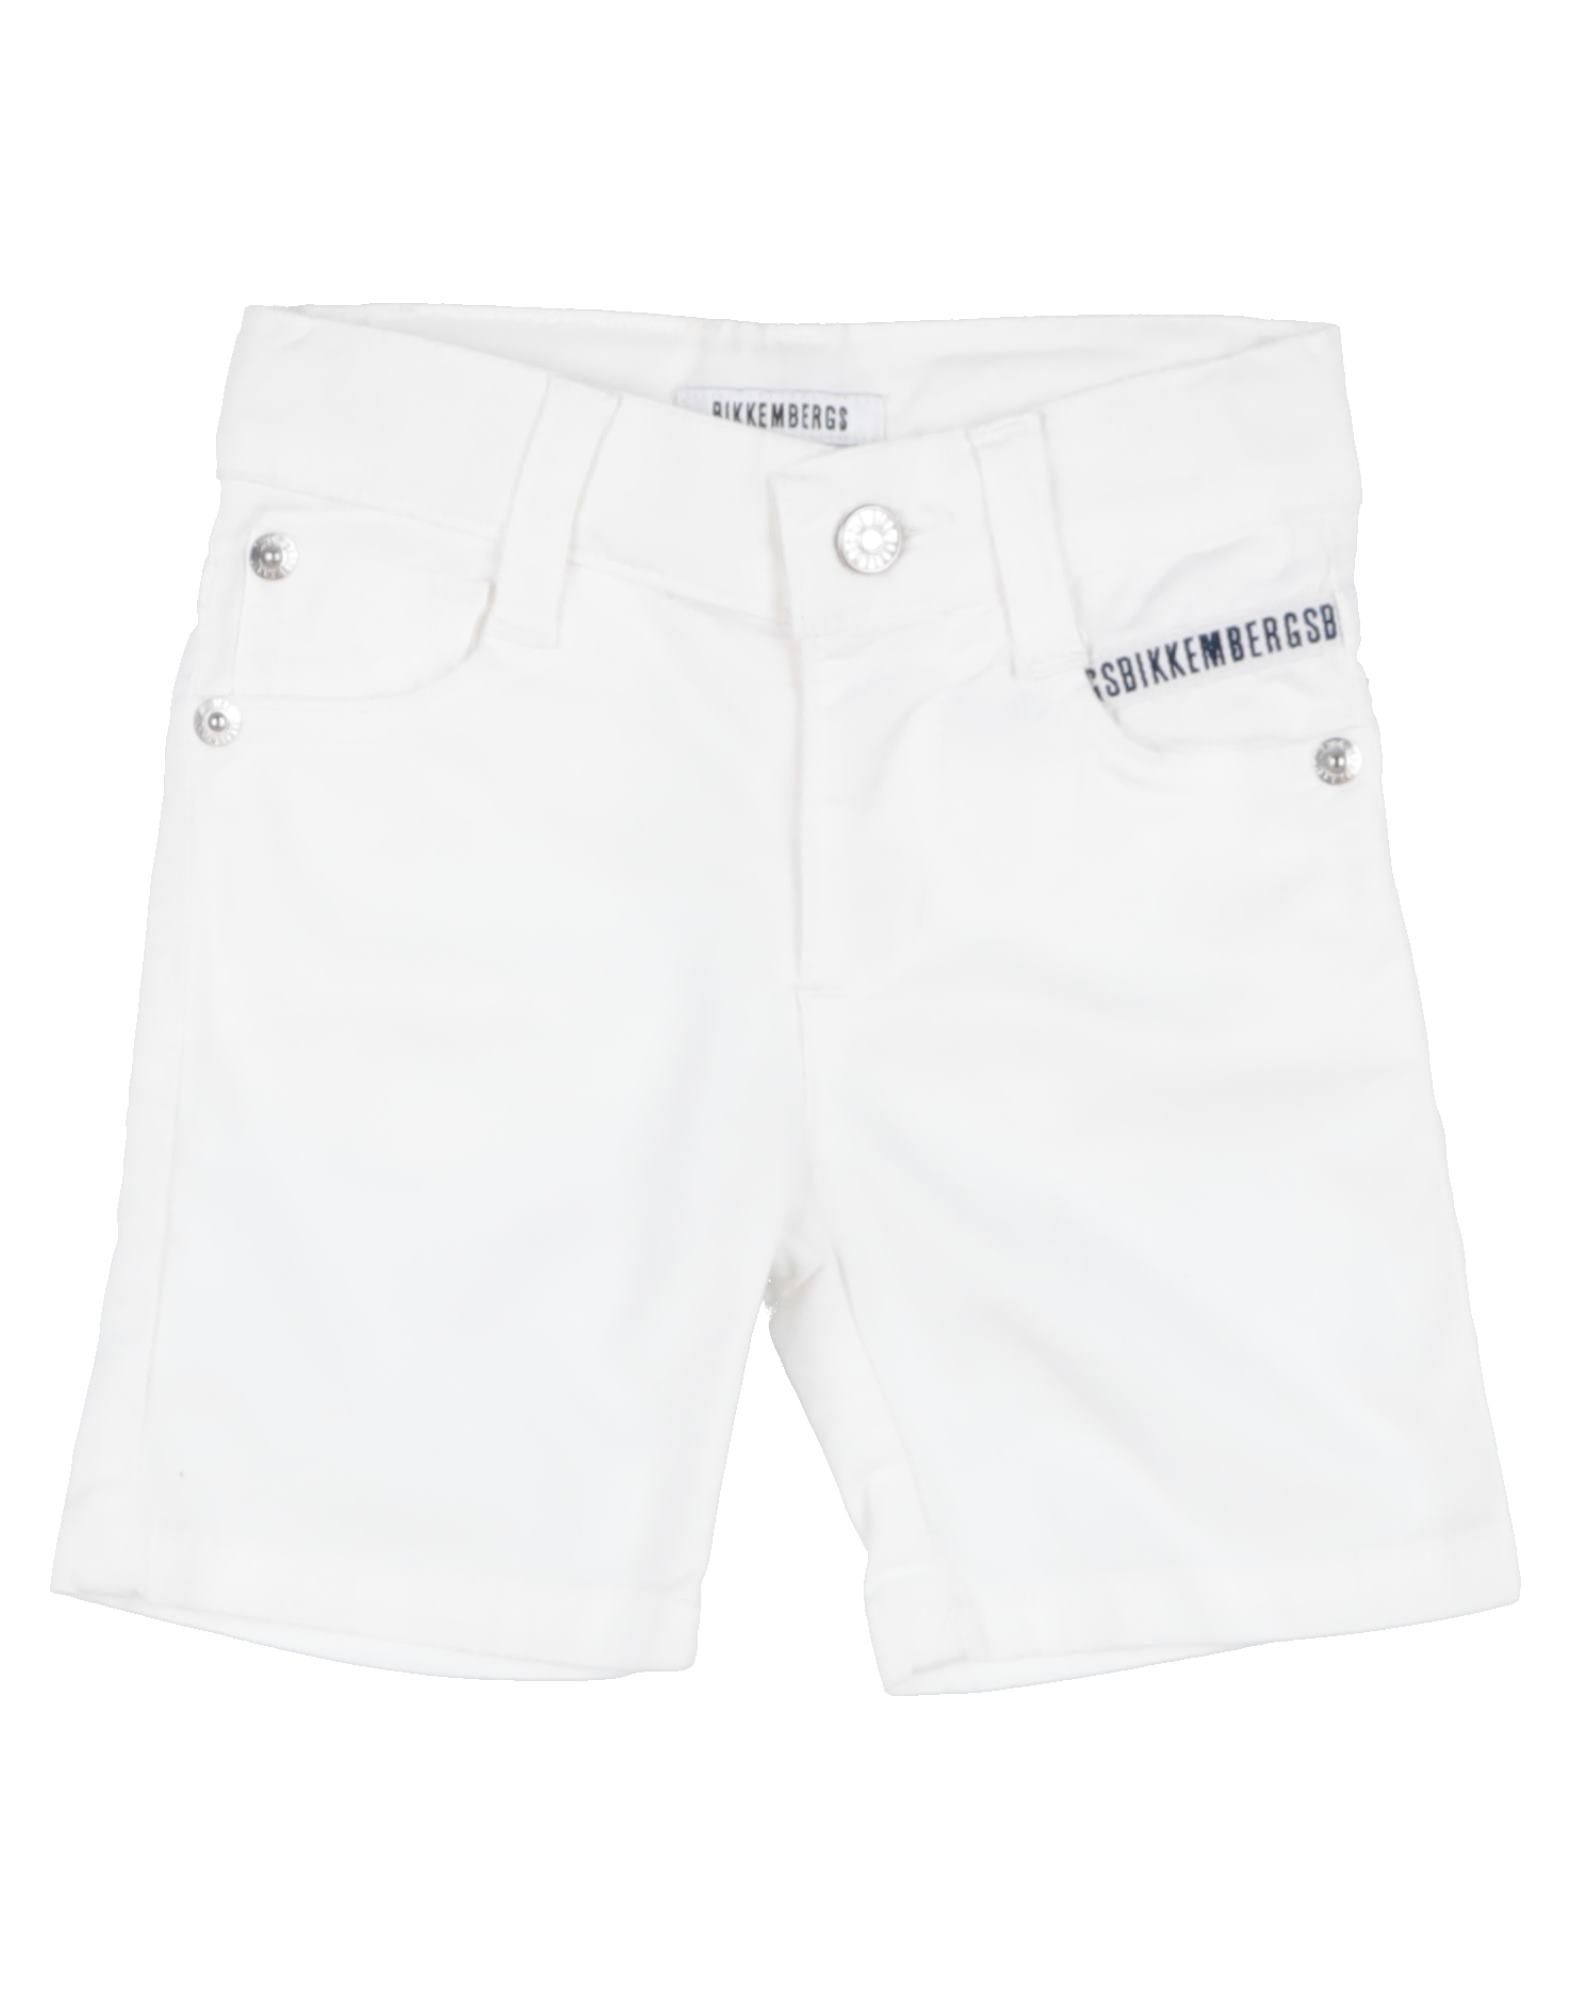 Bikkembergs Kids' Bermudas In White